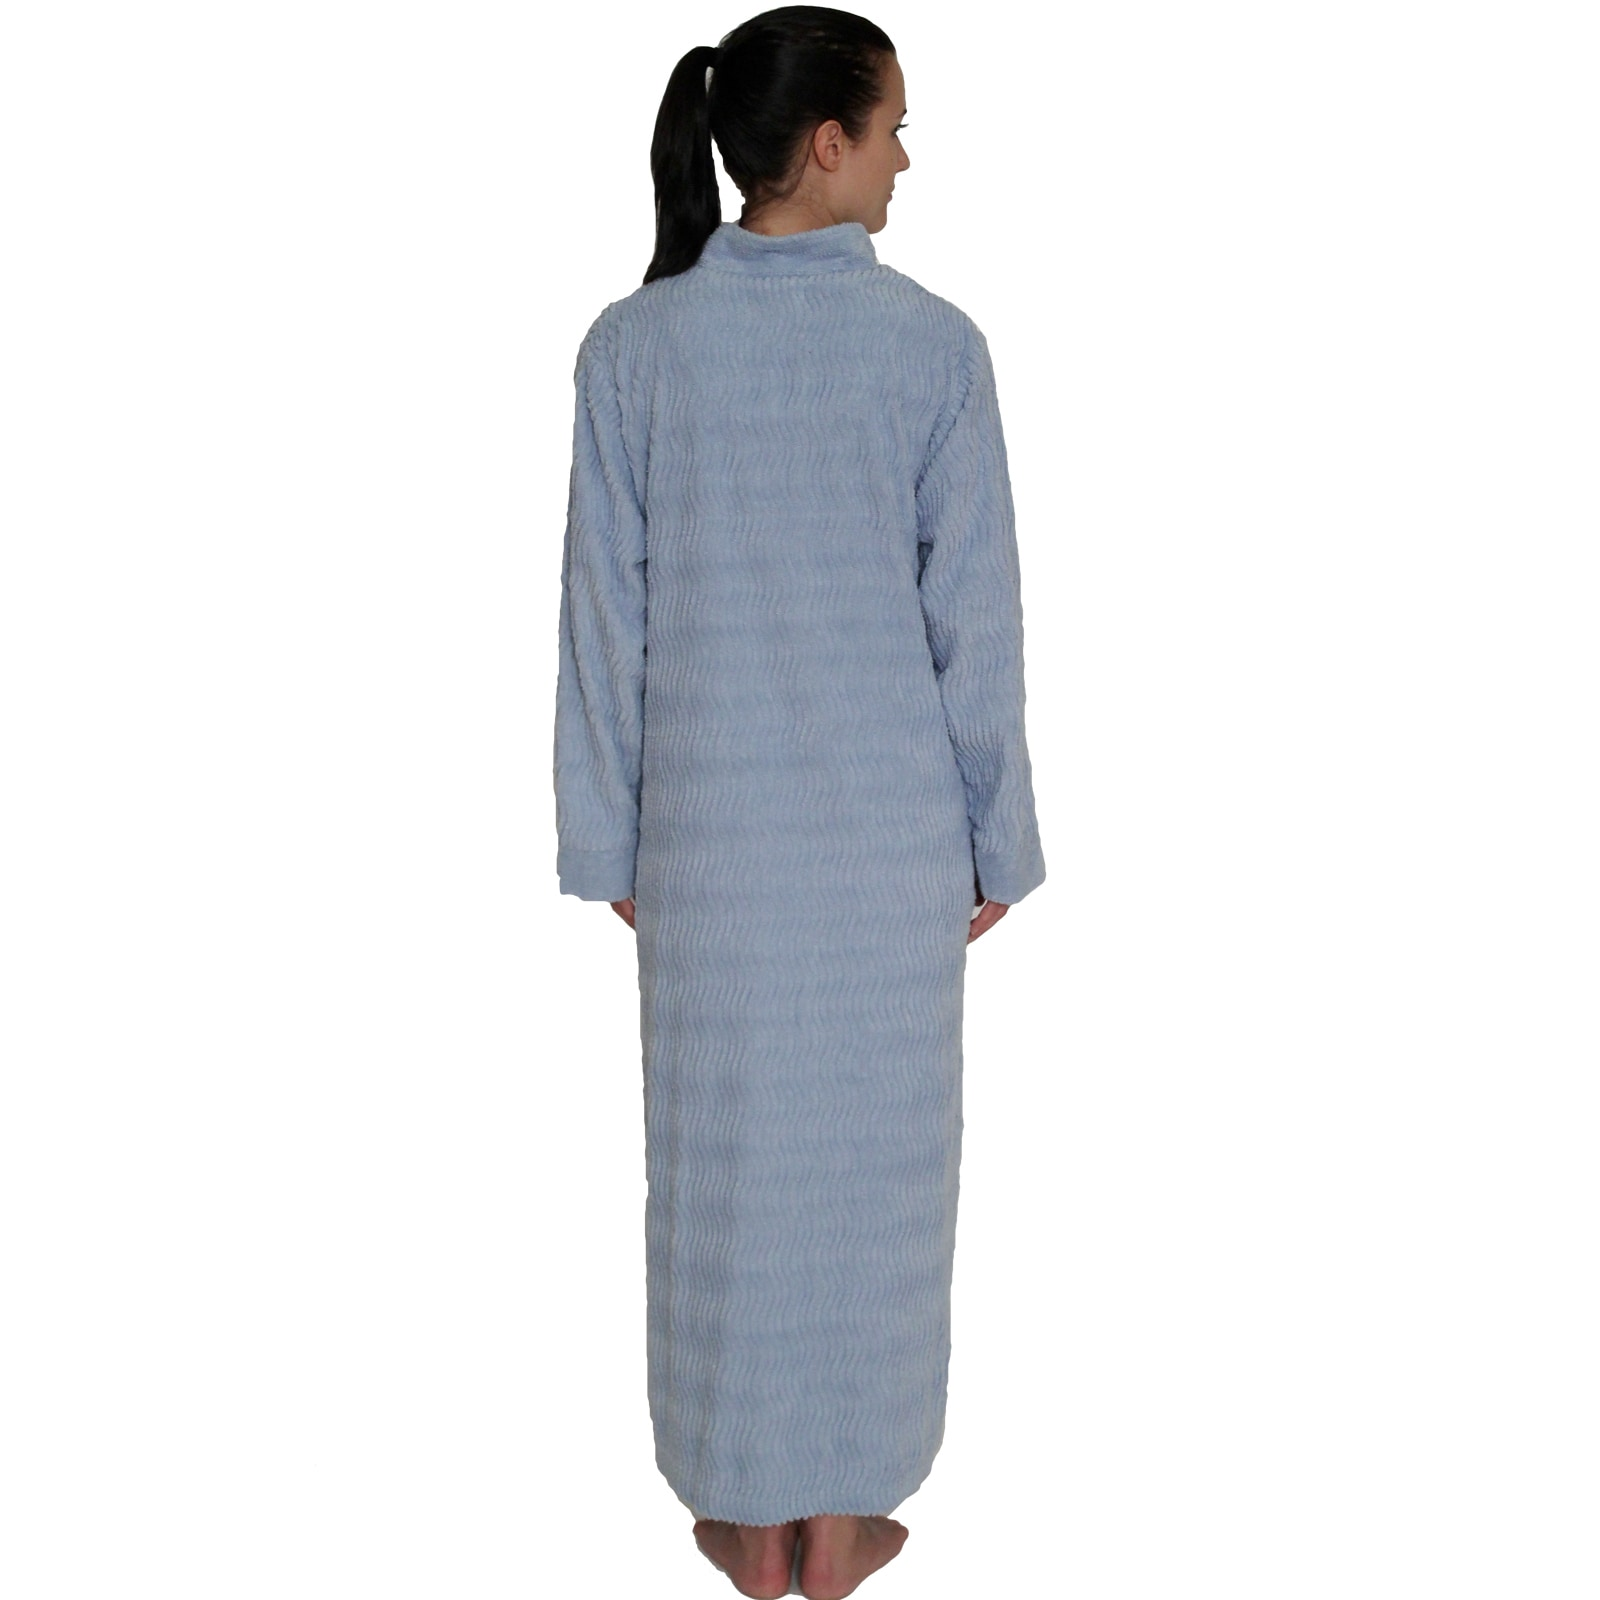 huge selection of brand quality structural disablities NDK New York Women's Cozy Zipper Front Cotton Chenille Robe